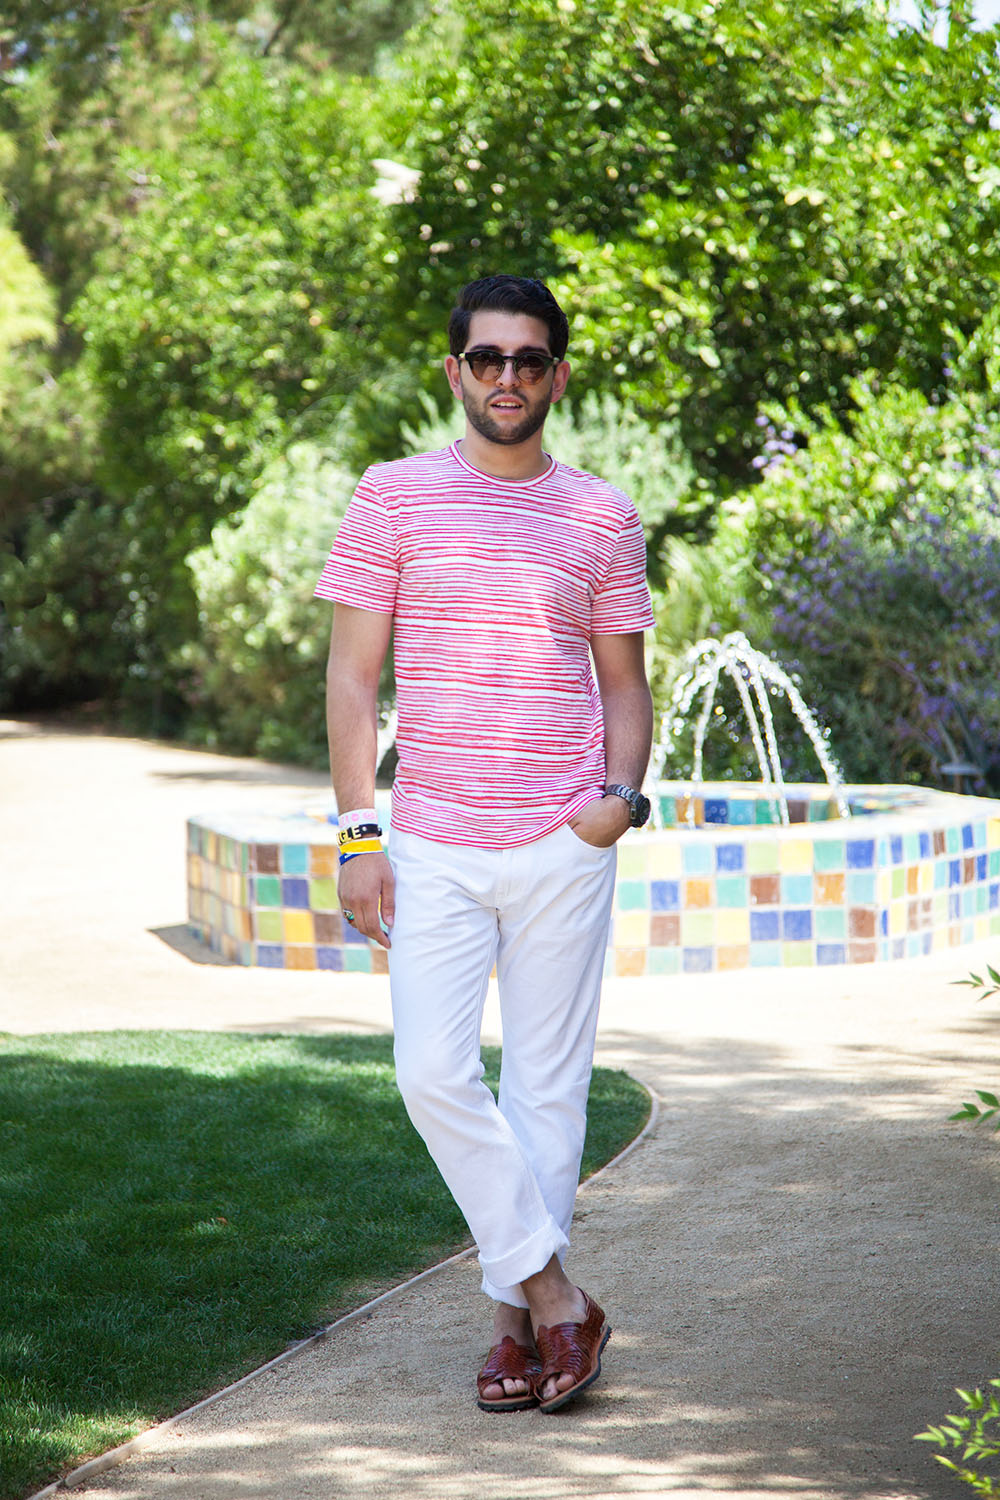 Quick snap outside the Harper's Bazaar Poolside Fête